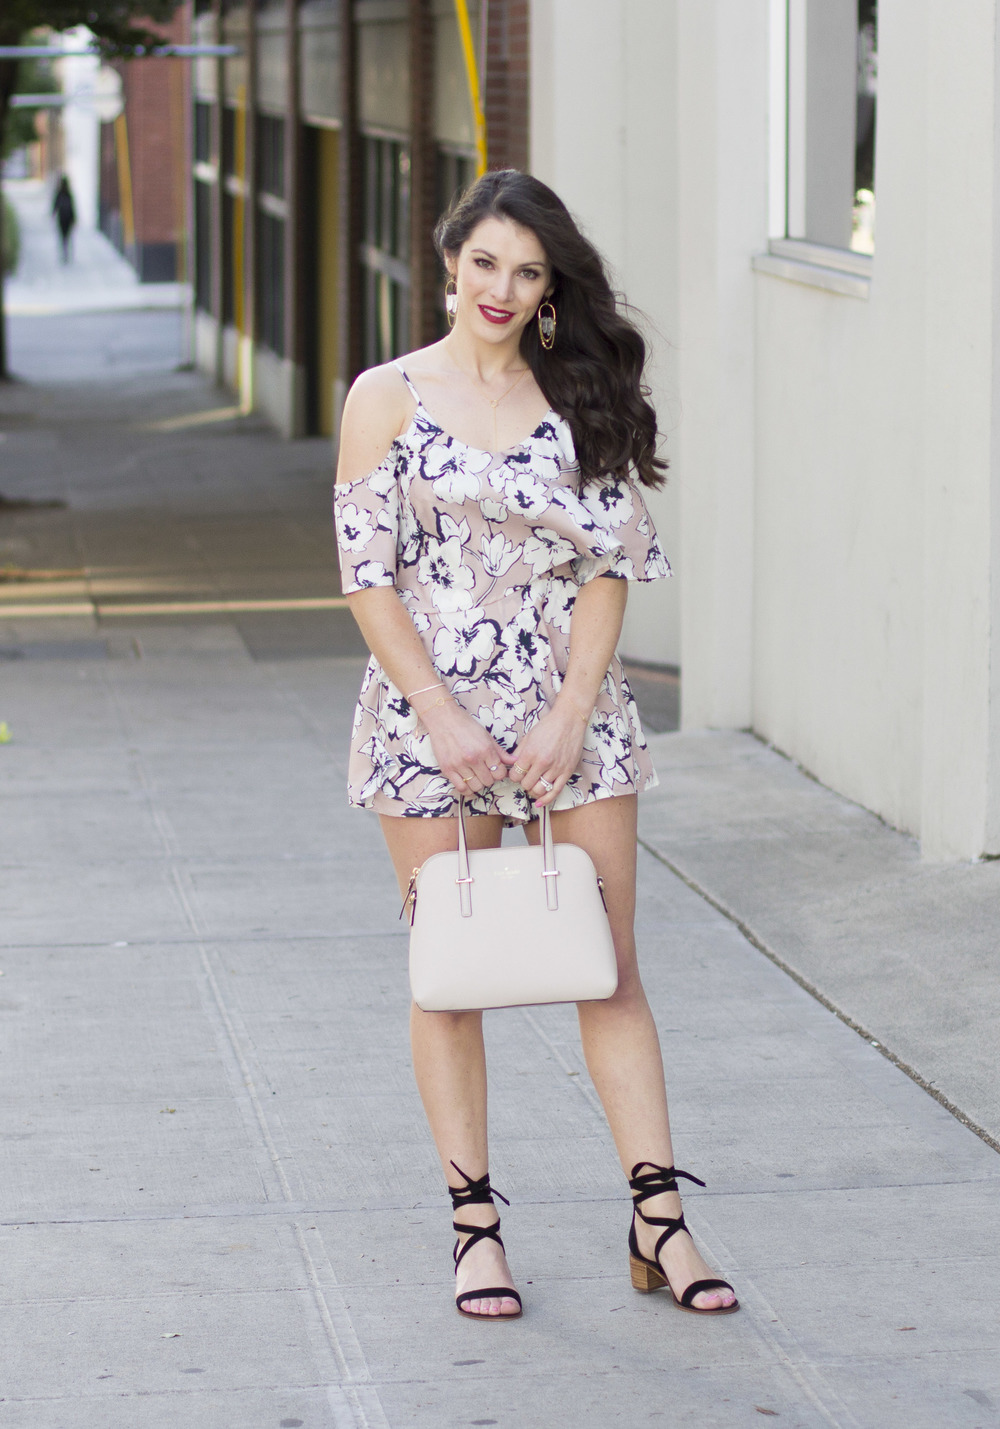 Summer date night outfit, JOA floral print cold shoulder romper, Steve Madden Rizzaa sandals, Kate Spade Cedar Street Maise, J.Crew denim jacket with DIY embellishment, statement earrings, and NARS red lipstick.